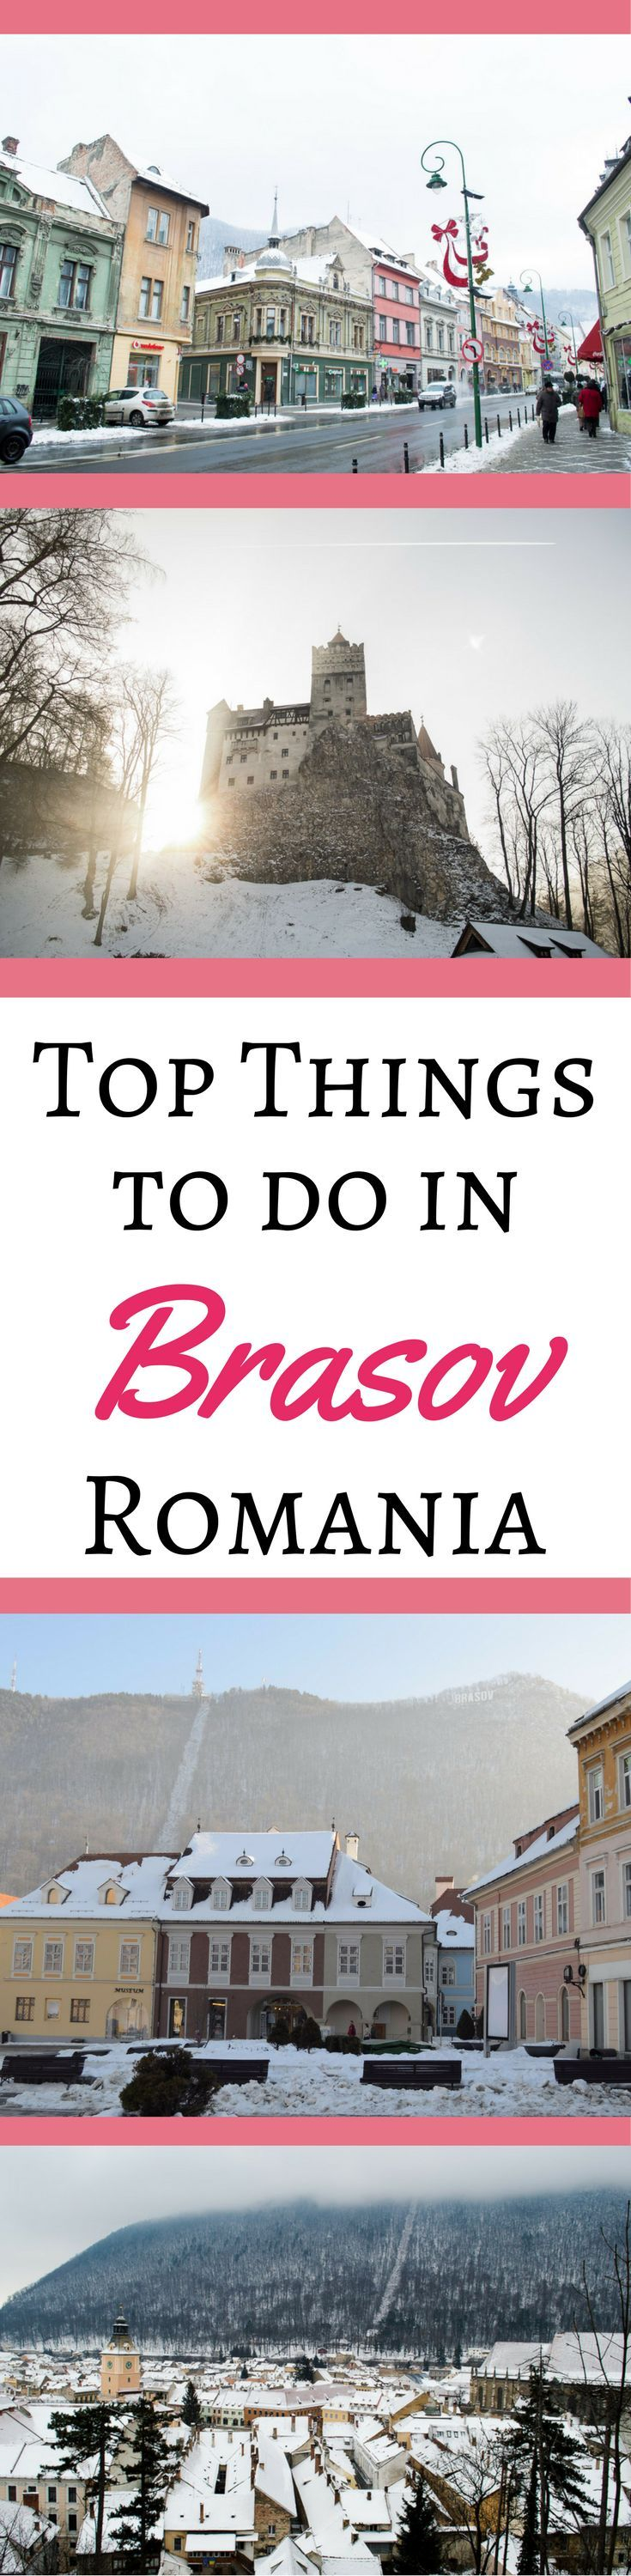 Brasov Travel Guide   Best Things to Do in Brasov   Romania travel guide   Where to eat in Brasov   Brasov activities   Brasov, Romania    Things to do in Romania